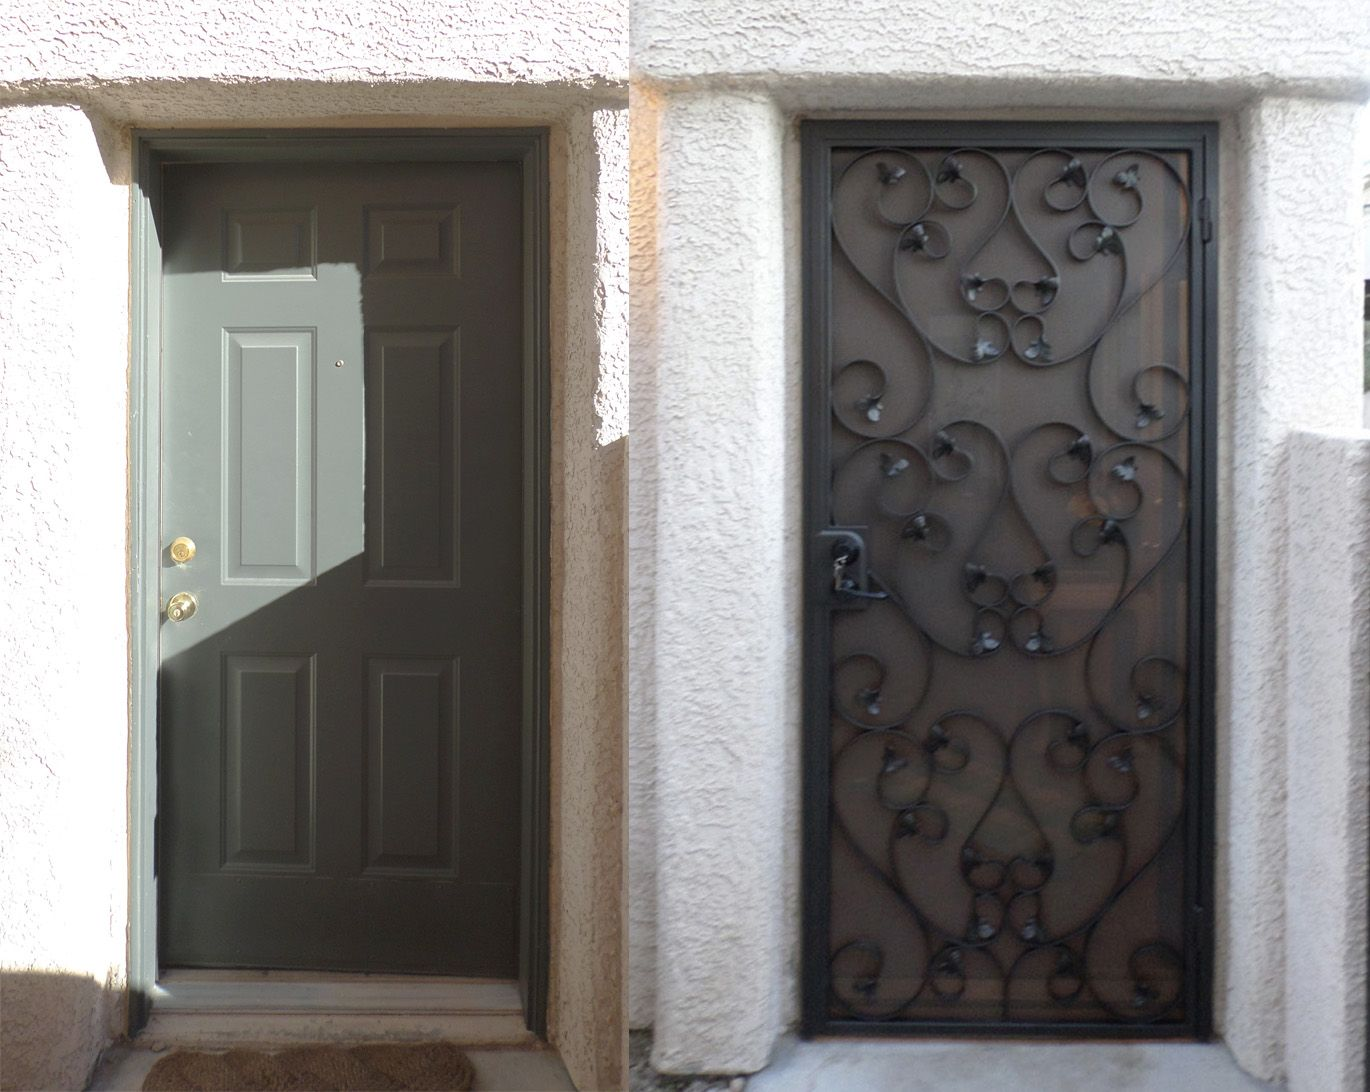 Before After Wrought Iron Security Screen Door Iron Entry Doors Wrought Iron Security Doors Security Screen Door